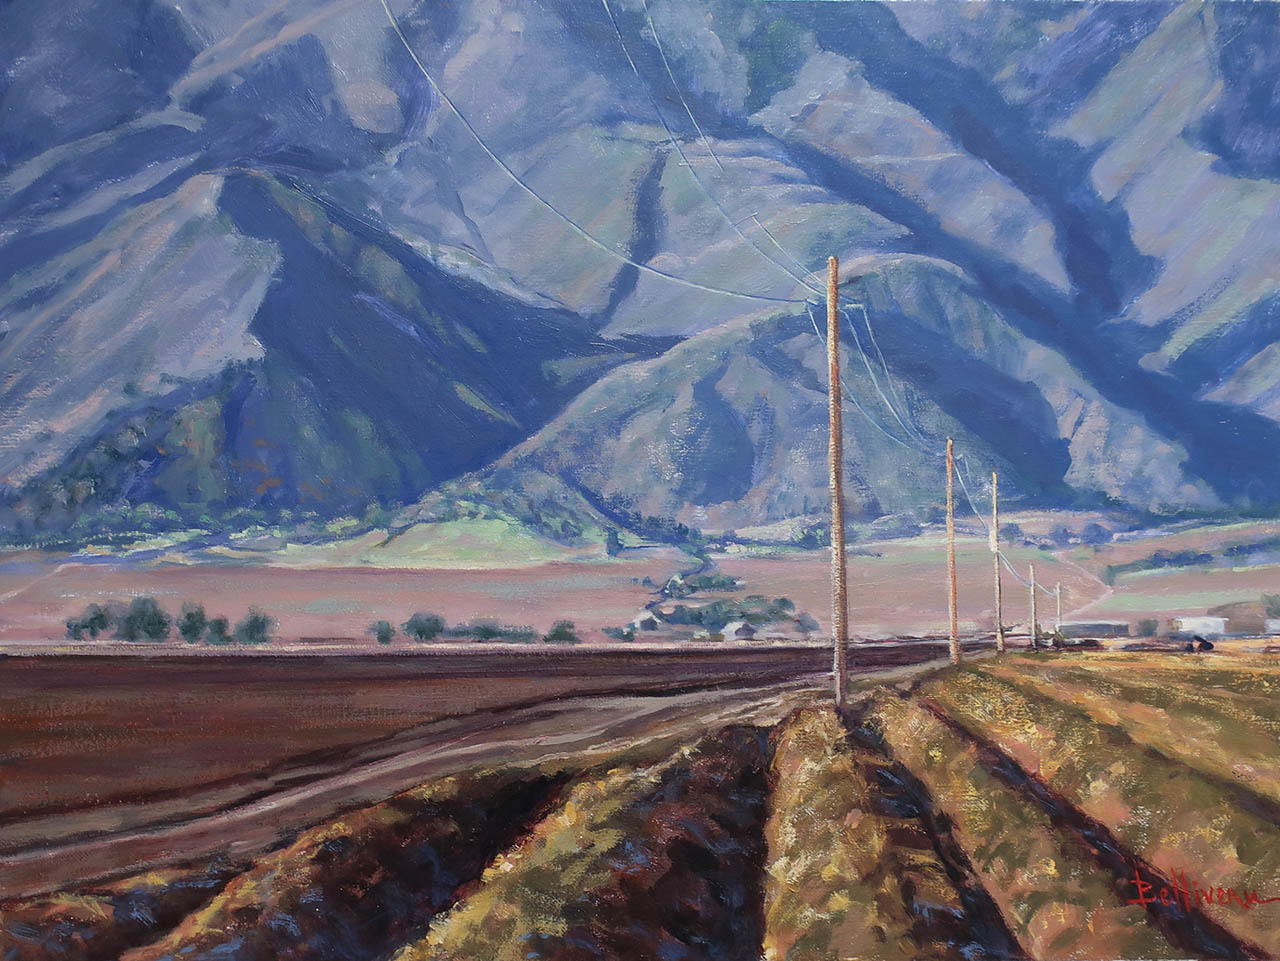 Valley Lines, by Carole Belliveau